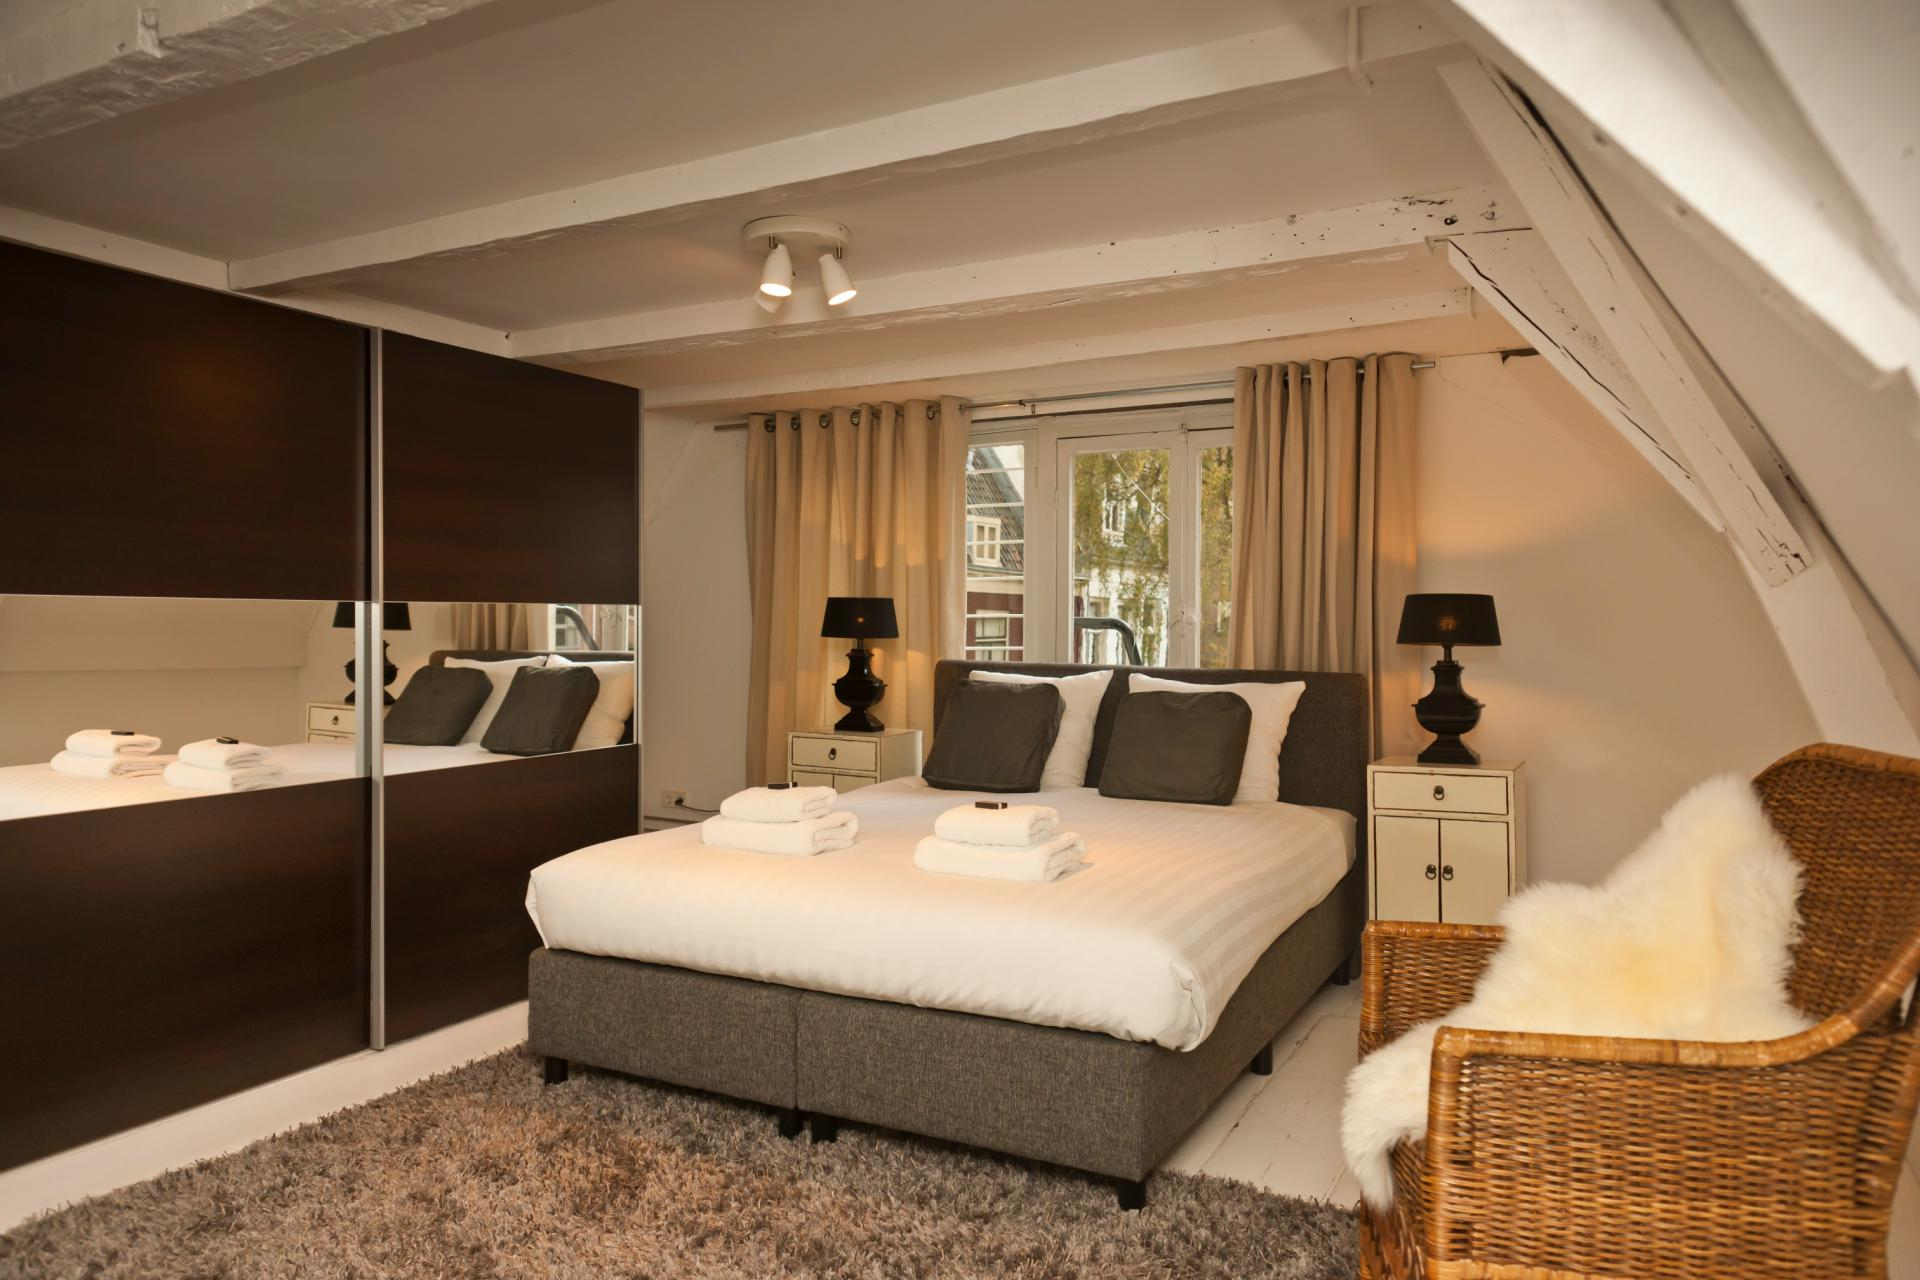 Bedroom at Jordaan Herenstraat Apartment, Amsterdam - Citybase Apartments